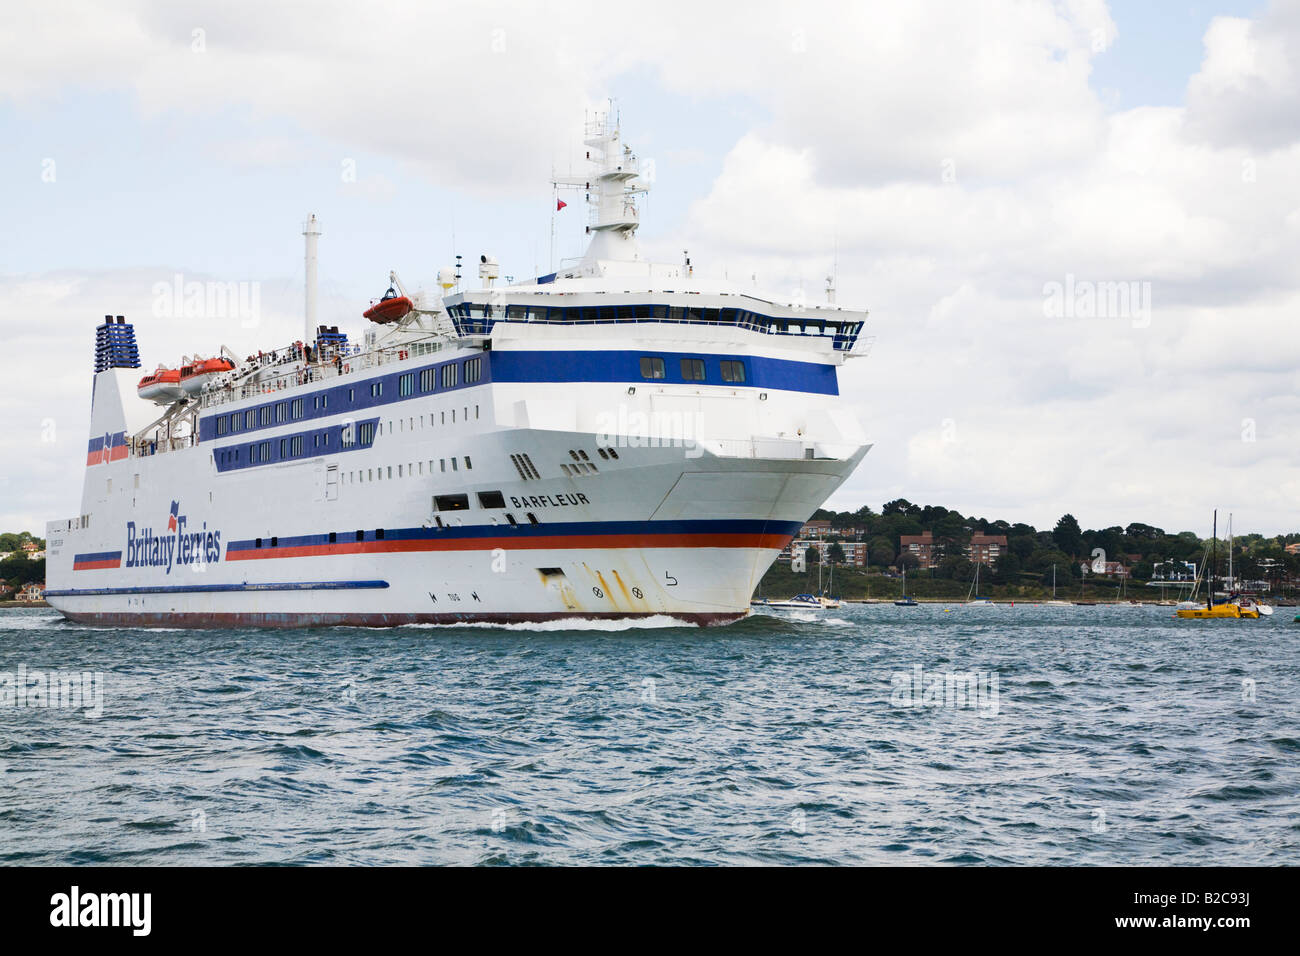 Barfleur cruise ferry ship information brittany ferries - Brittany Ferries Ship Barfleur Leaving Poole Harbour Dorset For The English Channel Crossing To France